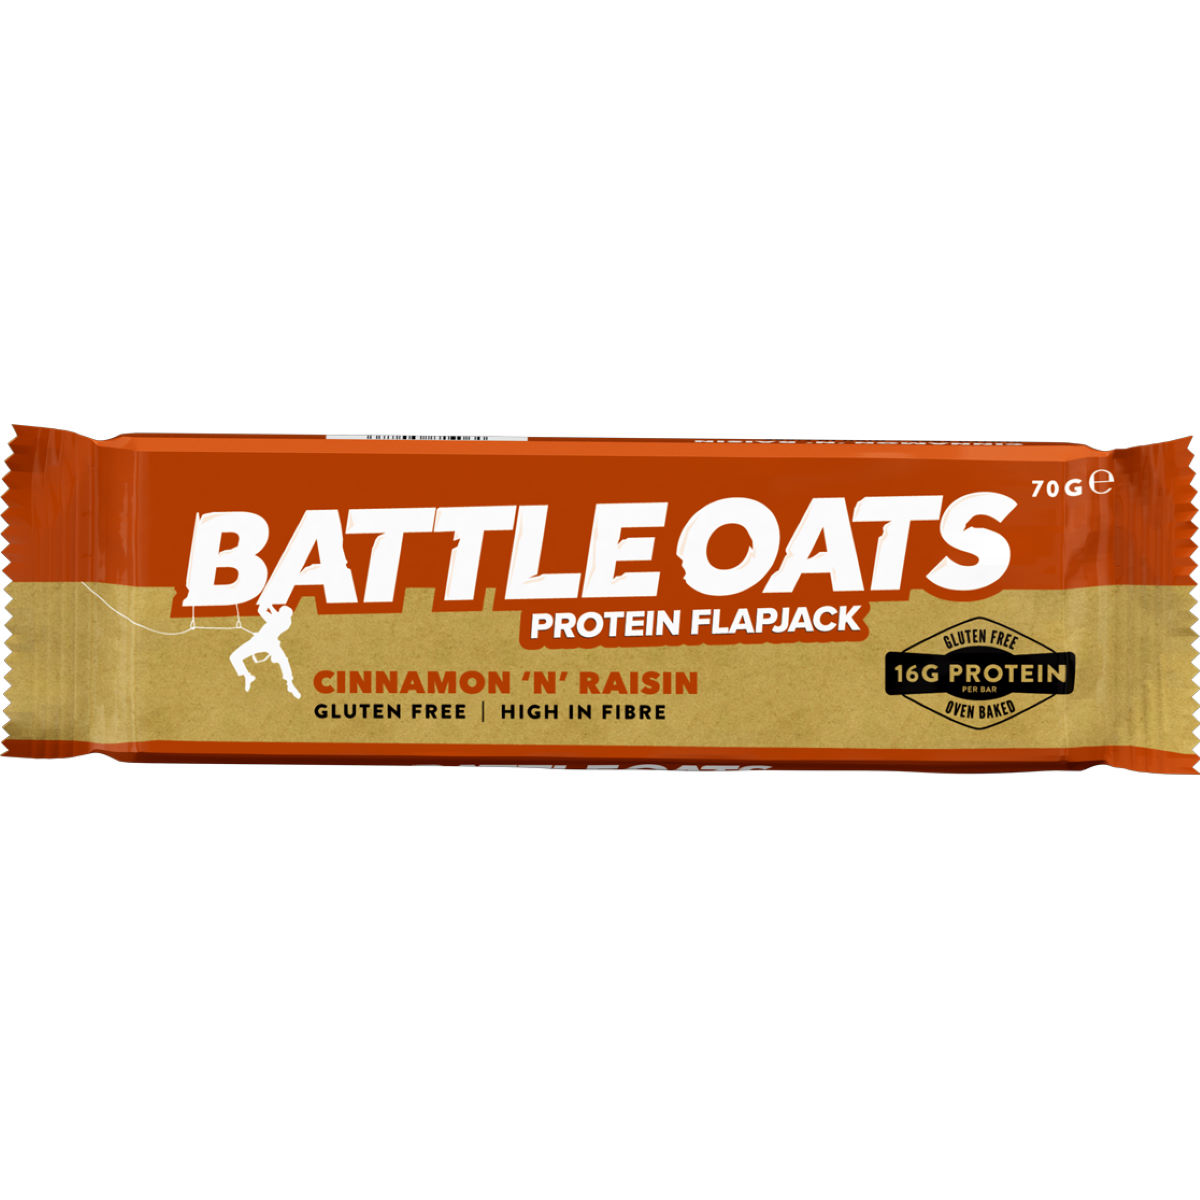 Barritas flapjack Battle Oats (12 x 70g) - Snacks